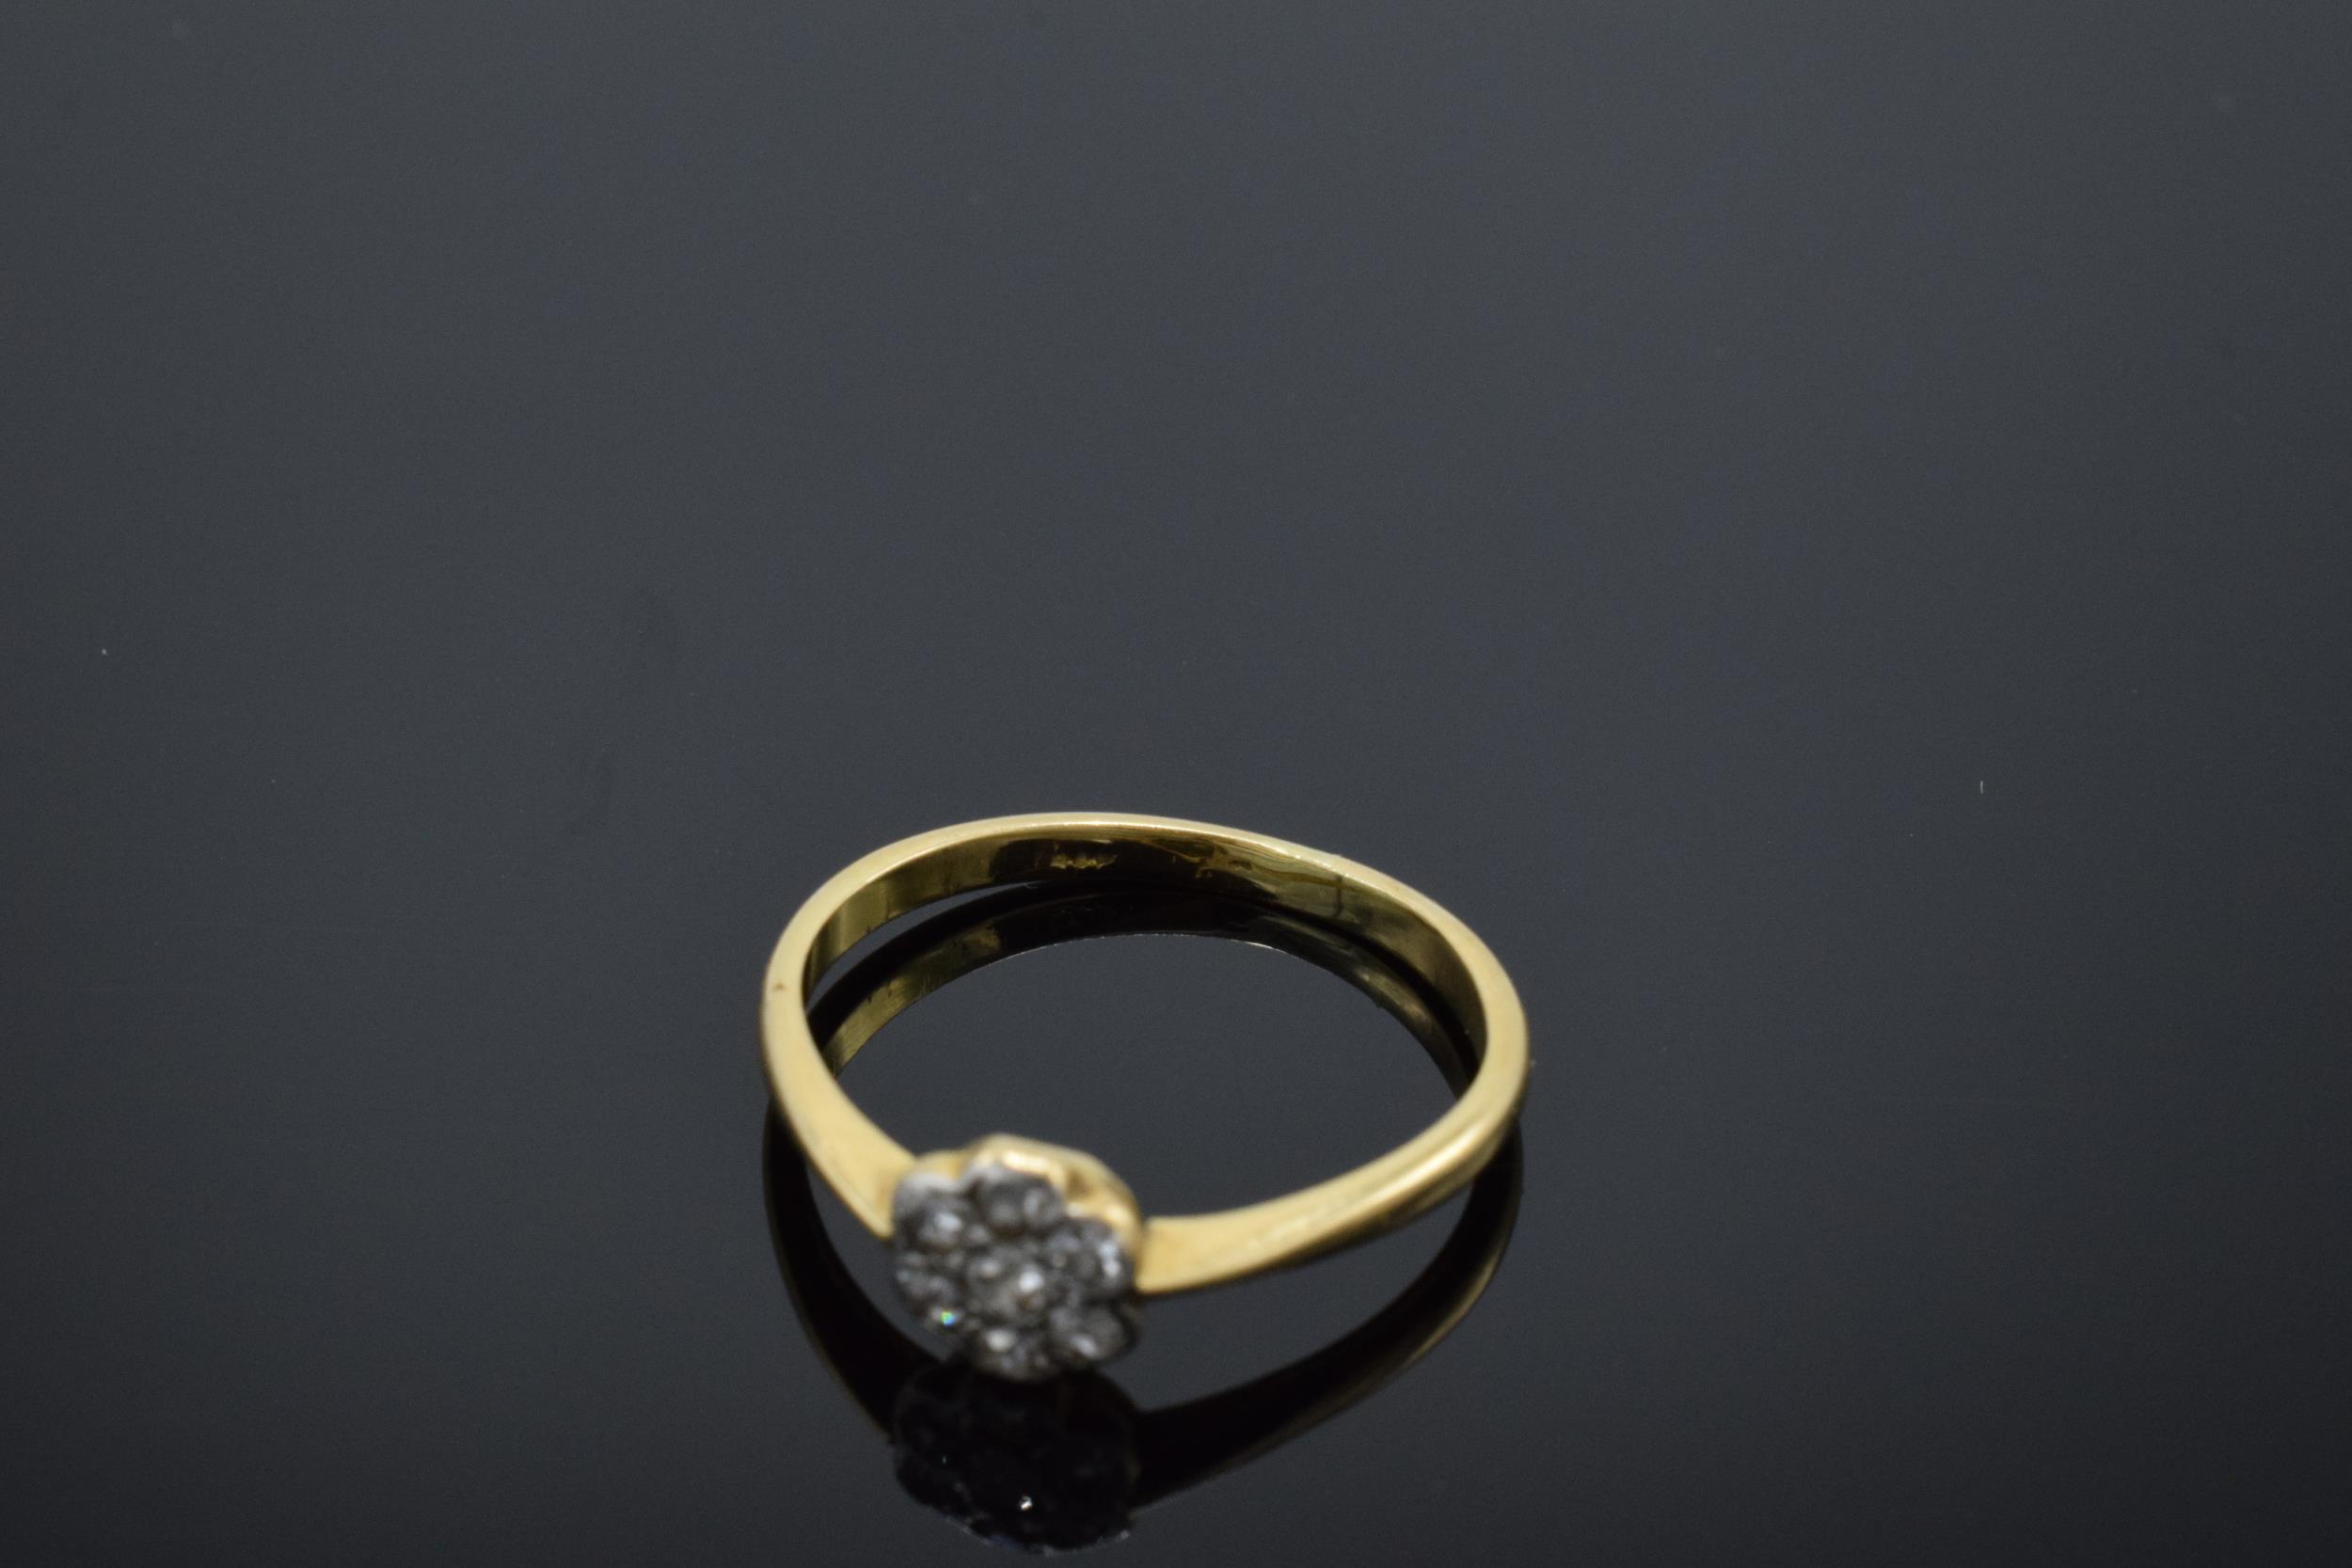 18ct gold daisy ring set with diamonds. UK size O. 2.1 grams. In good condition. - Image 3 of 3